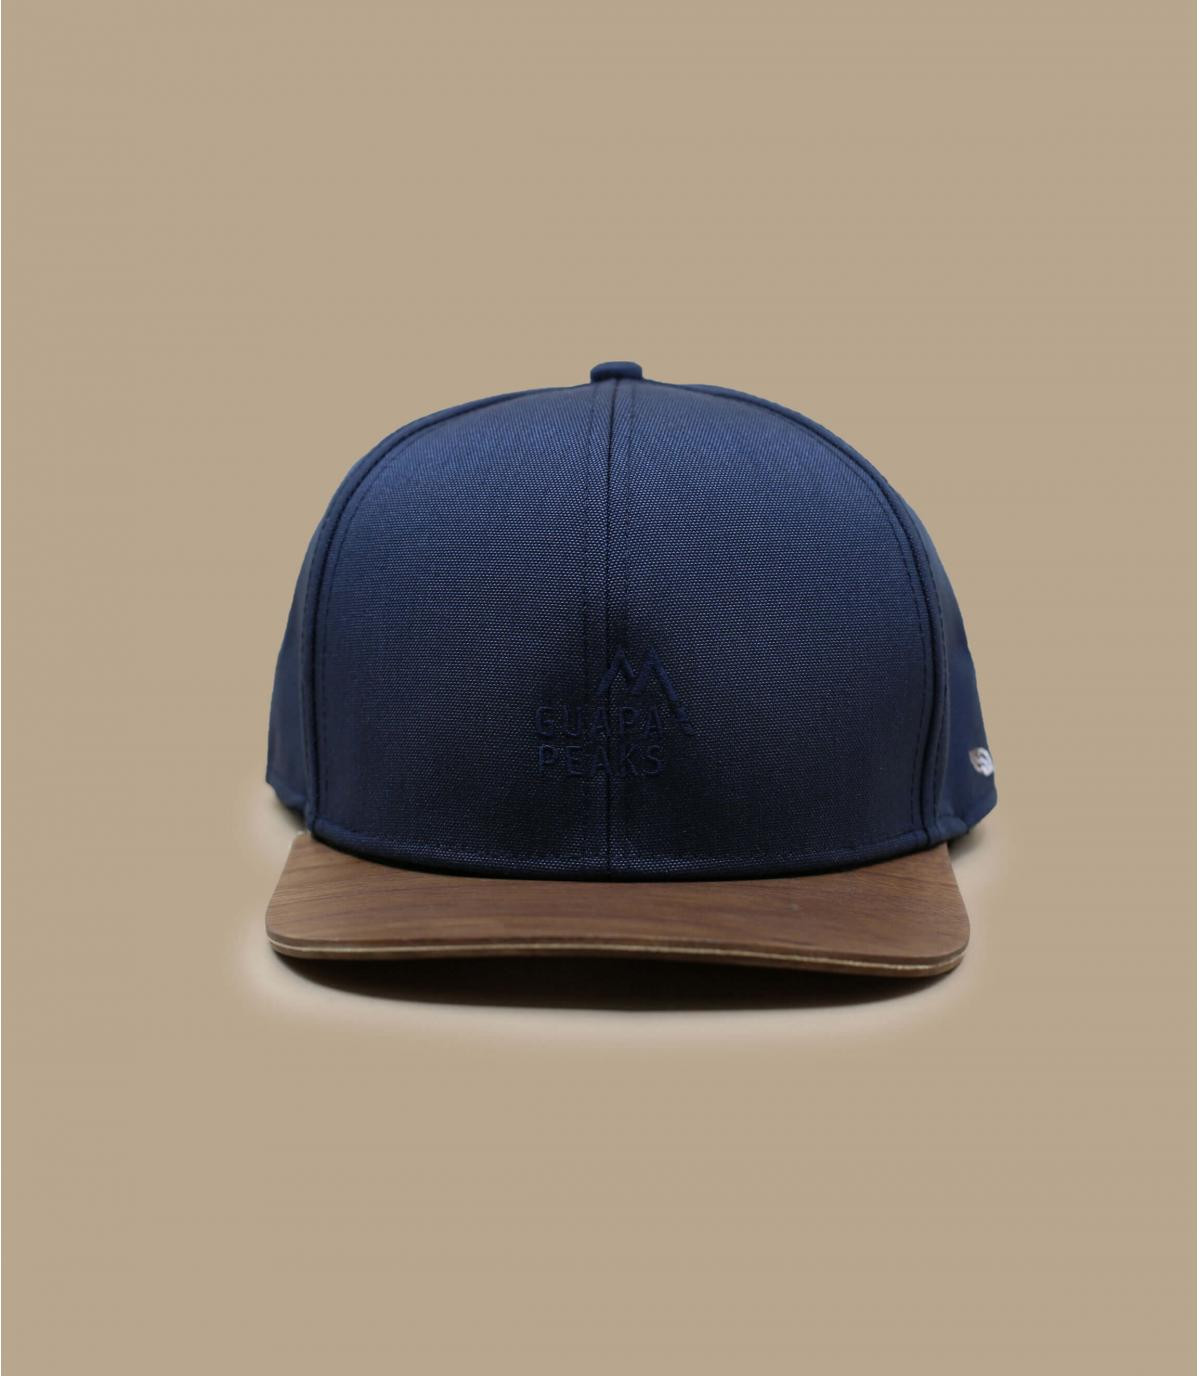 Details Snapback Recycled navy - Abbildung 1